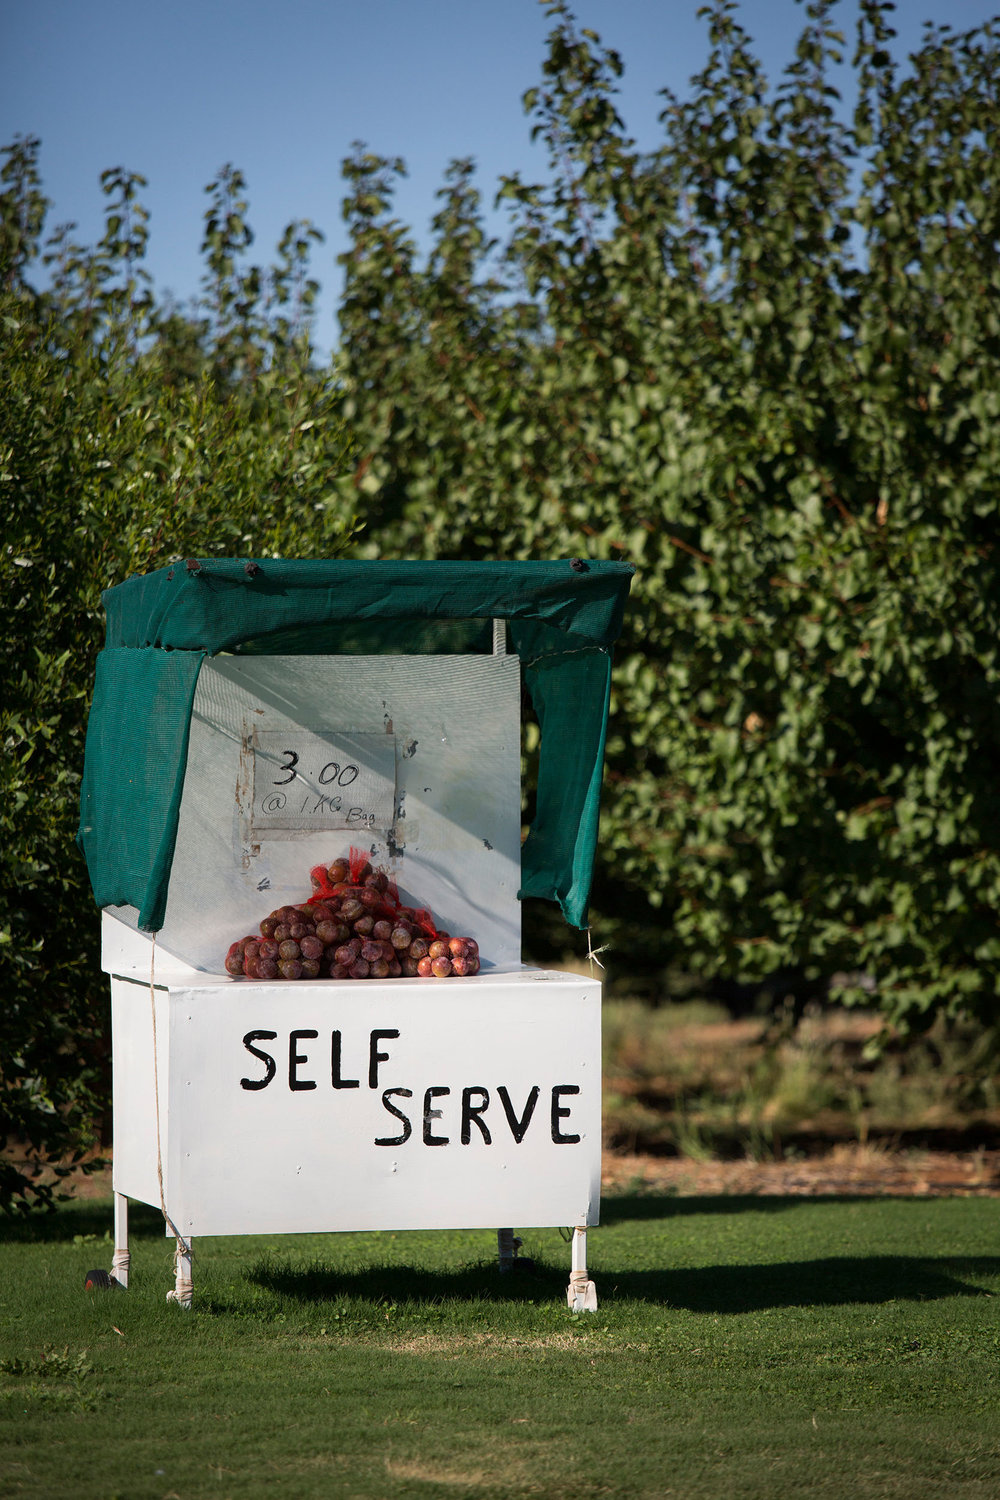 Roadside stall selling blood plums, Mildura, VIC.